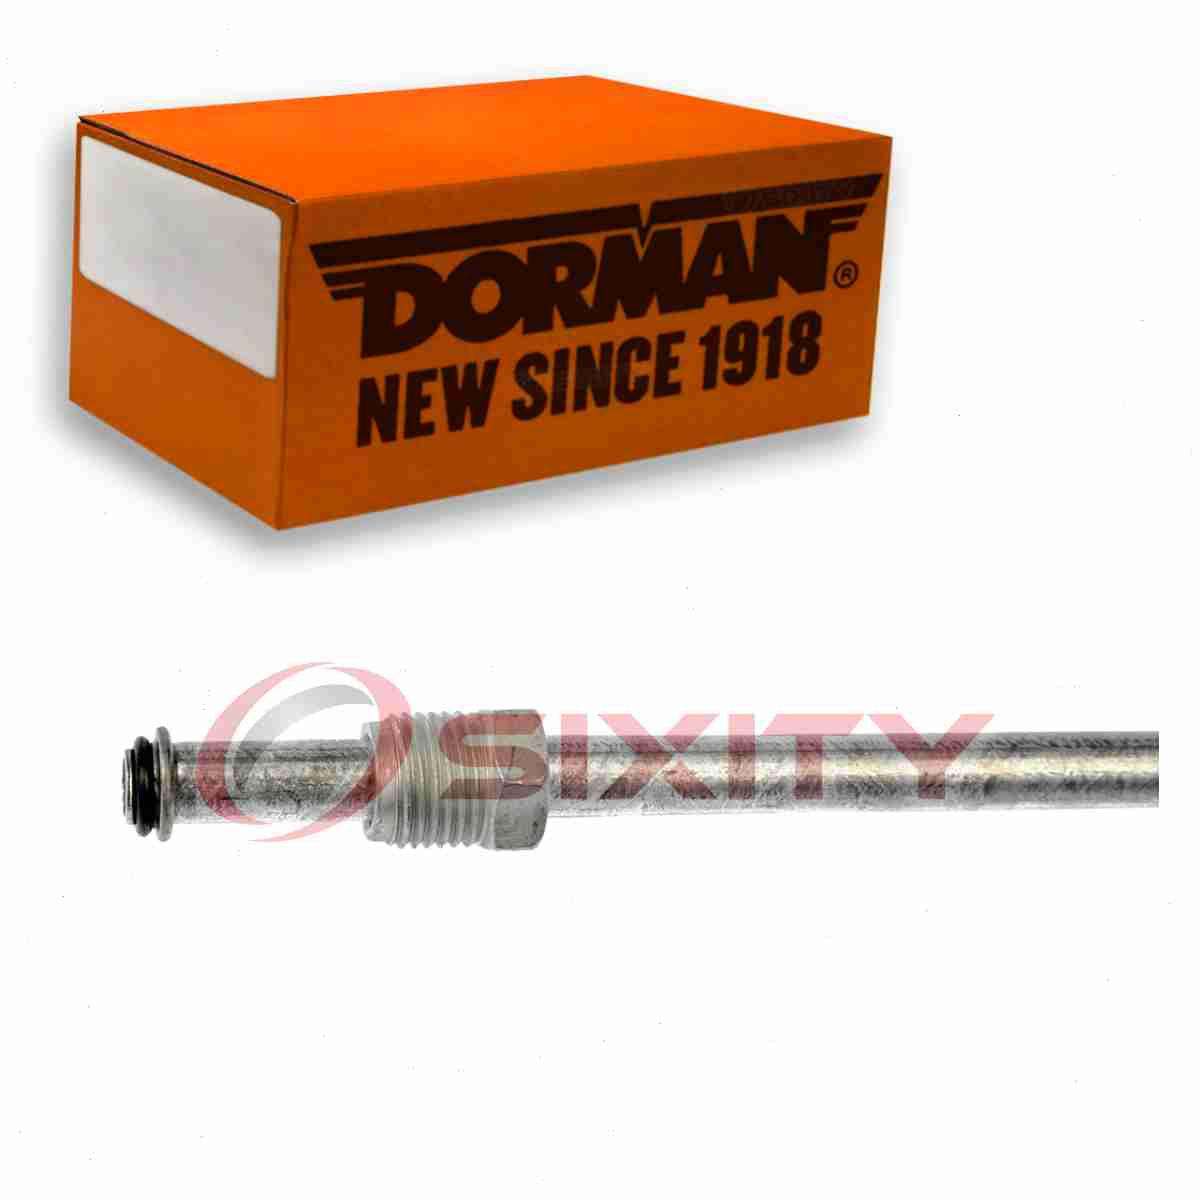 Dorman Fuel Line Connector For Chevy G30 1987-1996 4.3L V6